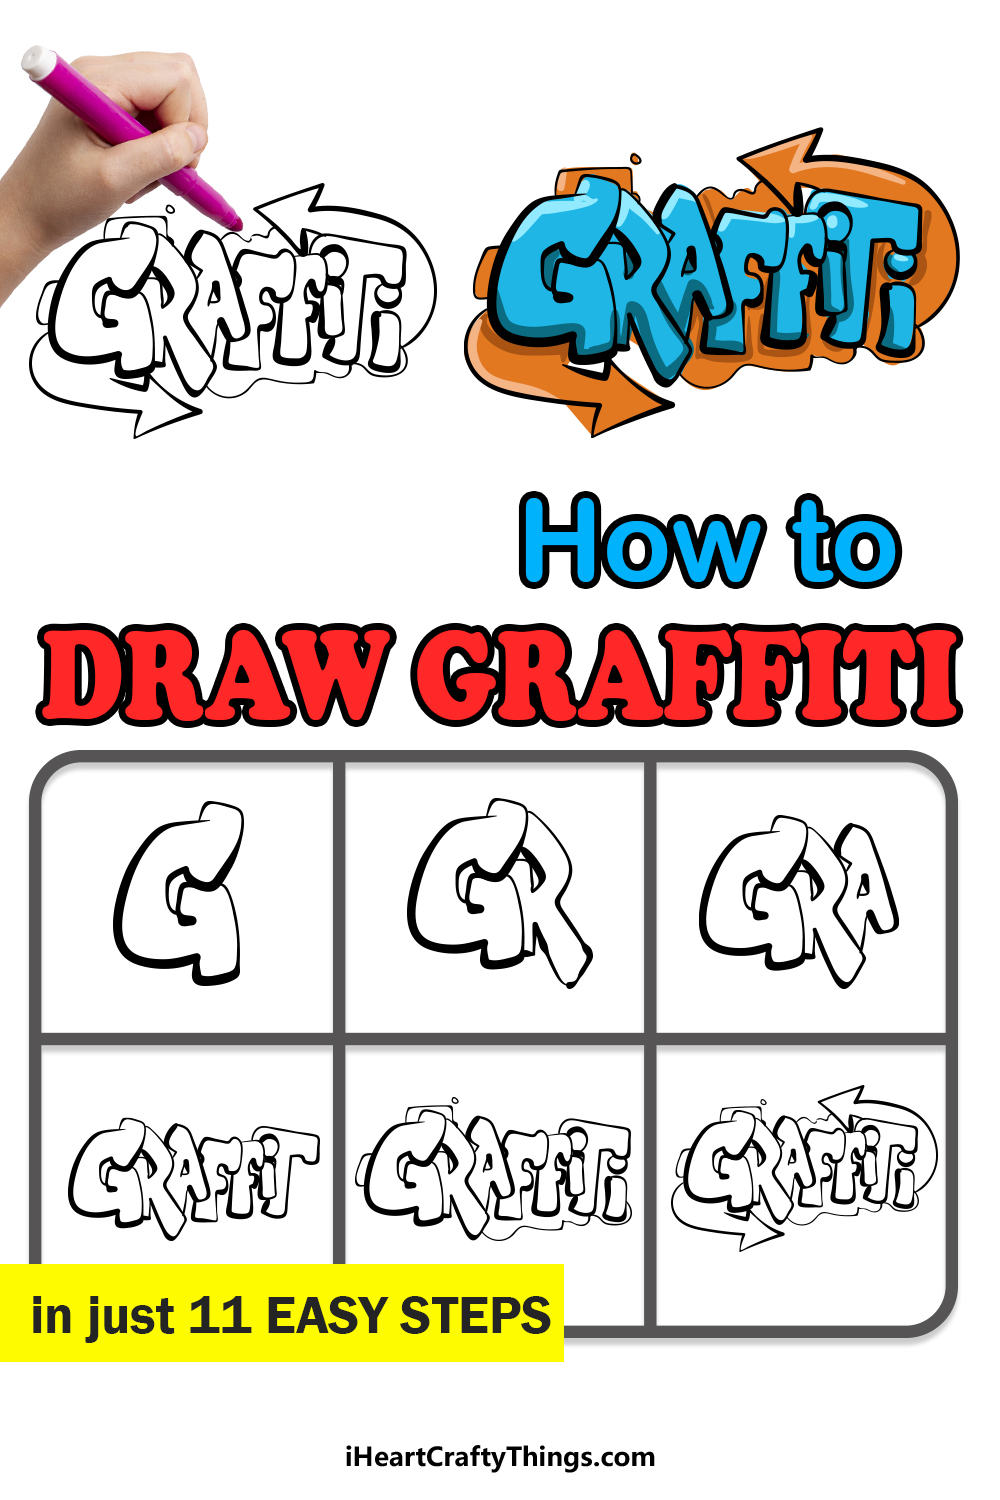 how to draw graffiti in 11 easy steps